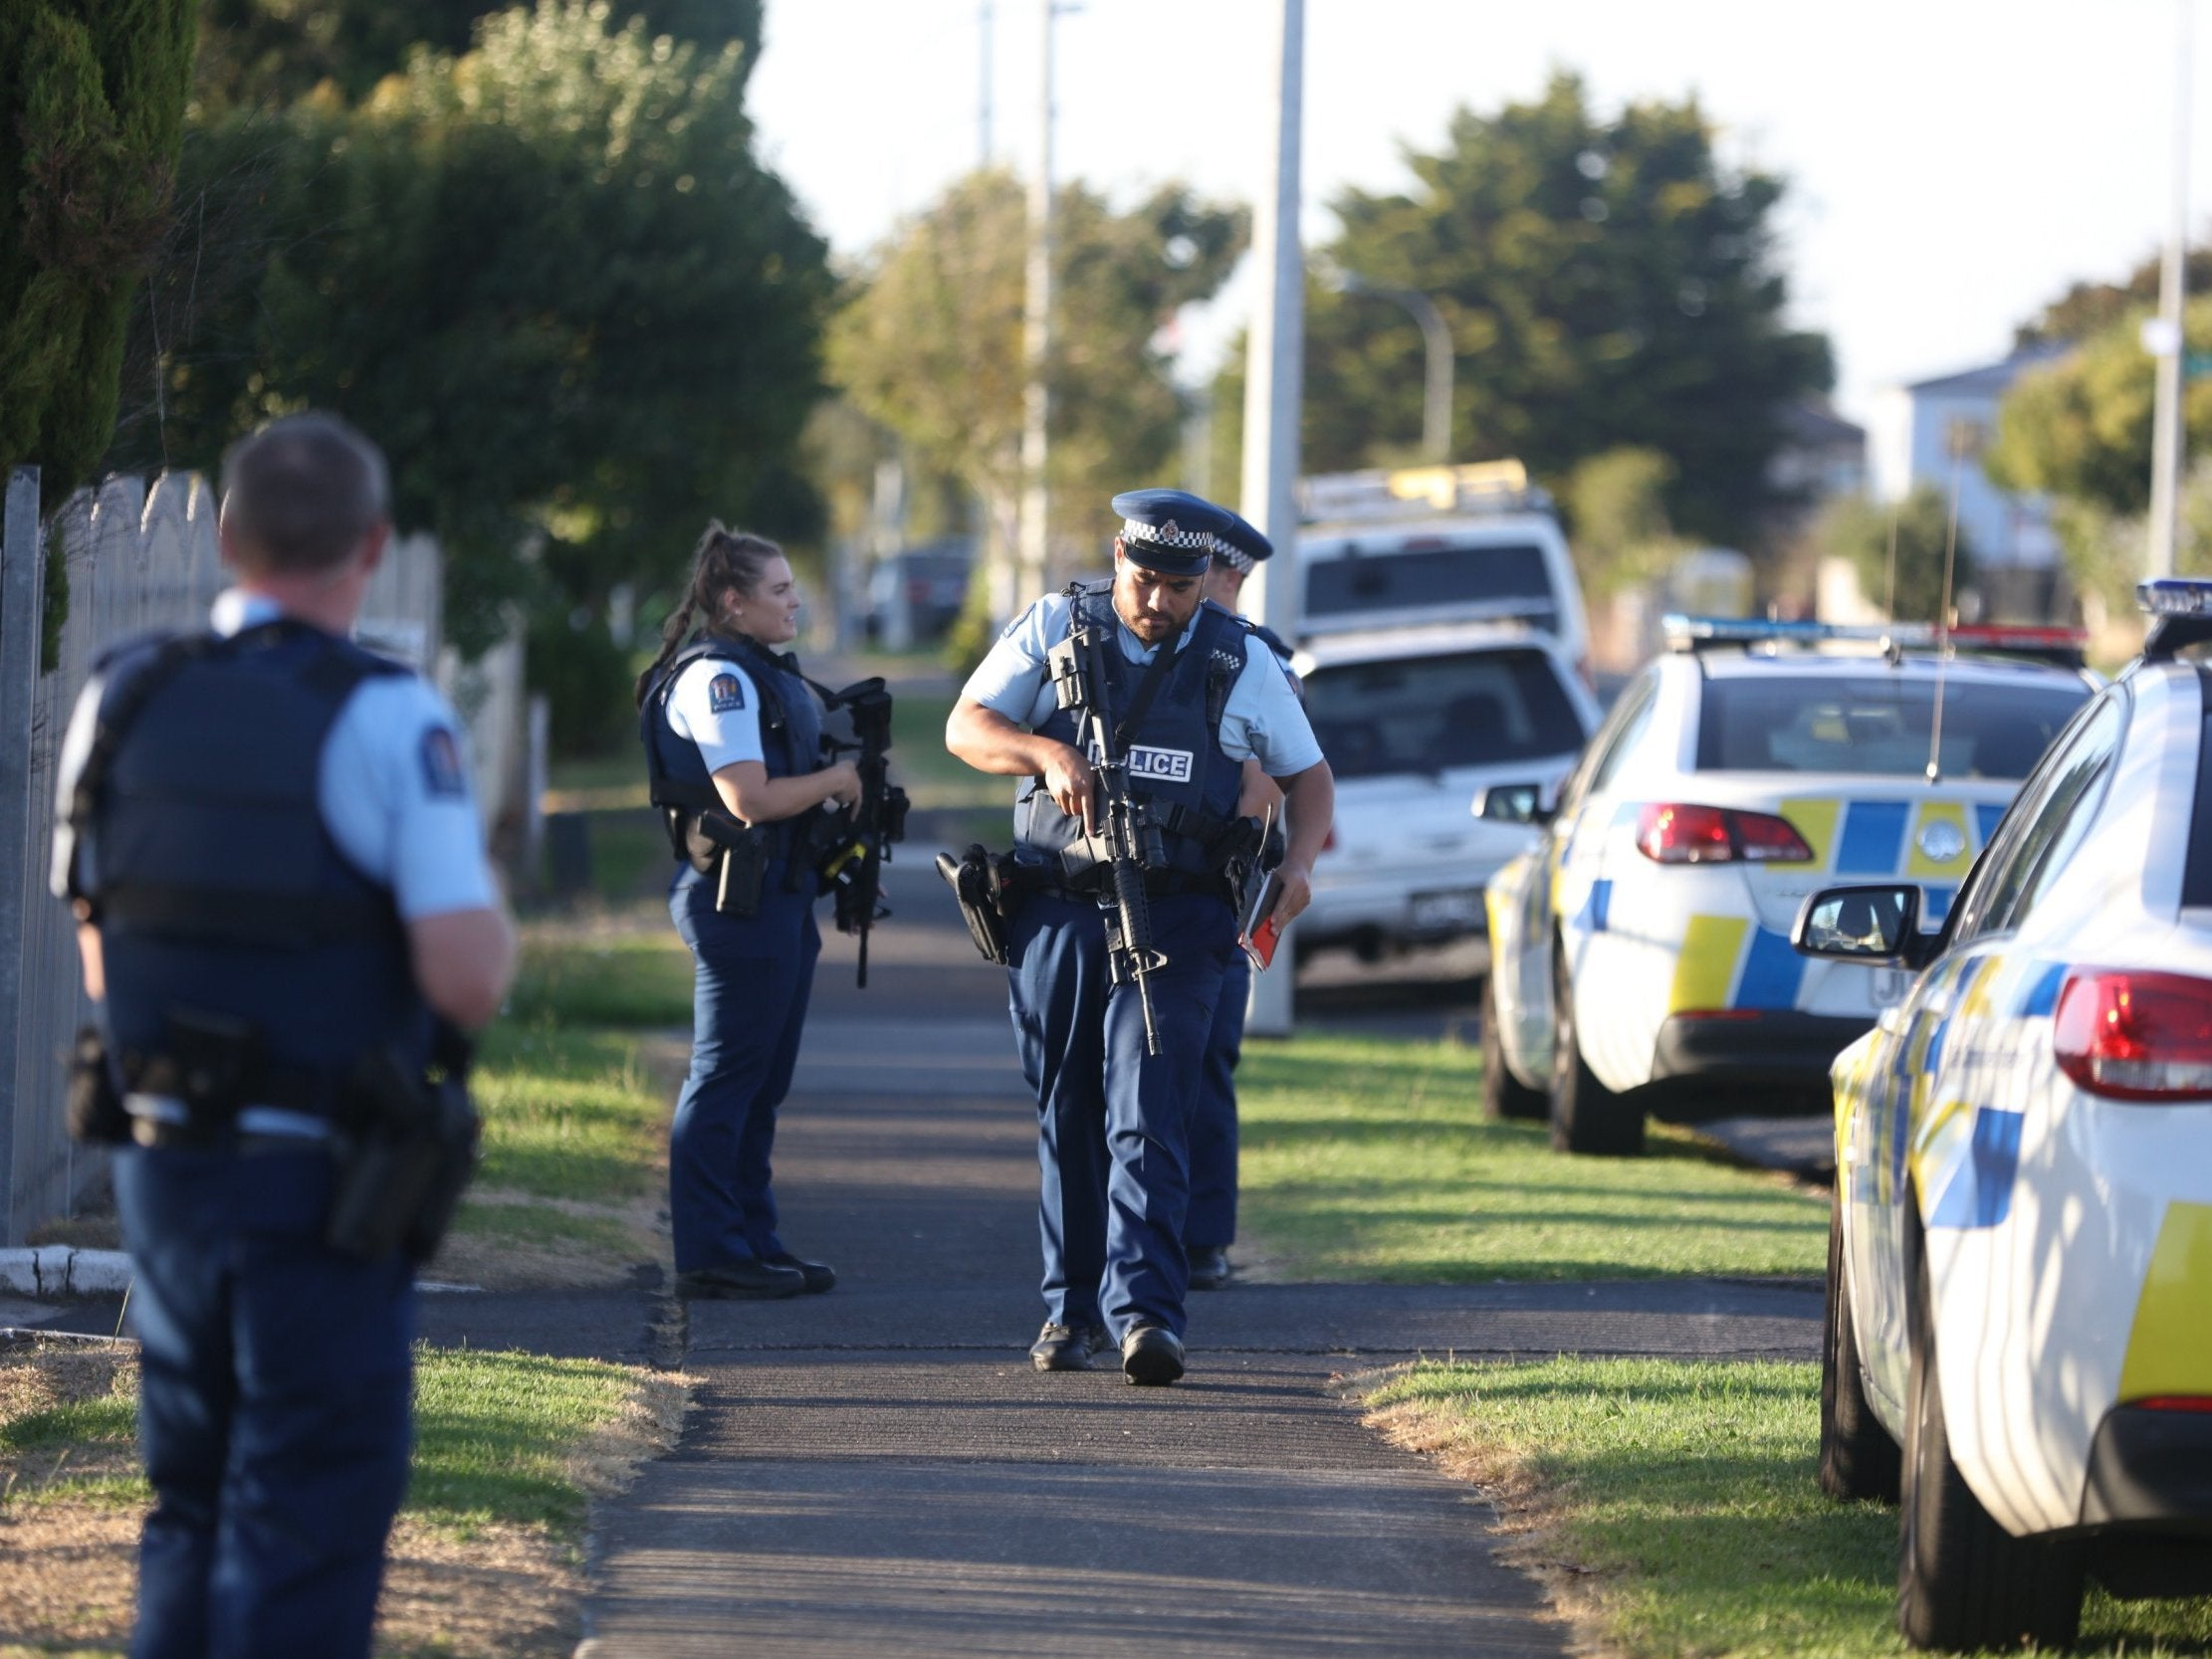 New Zealand Shooting: Video Shows Police Arresting